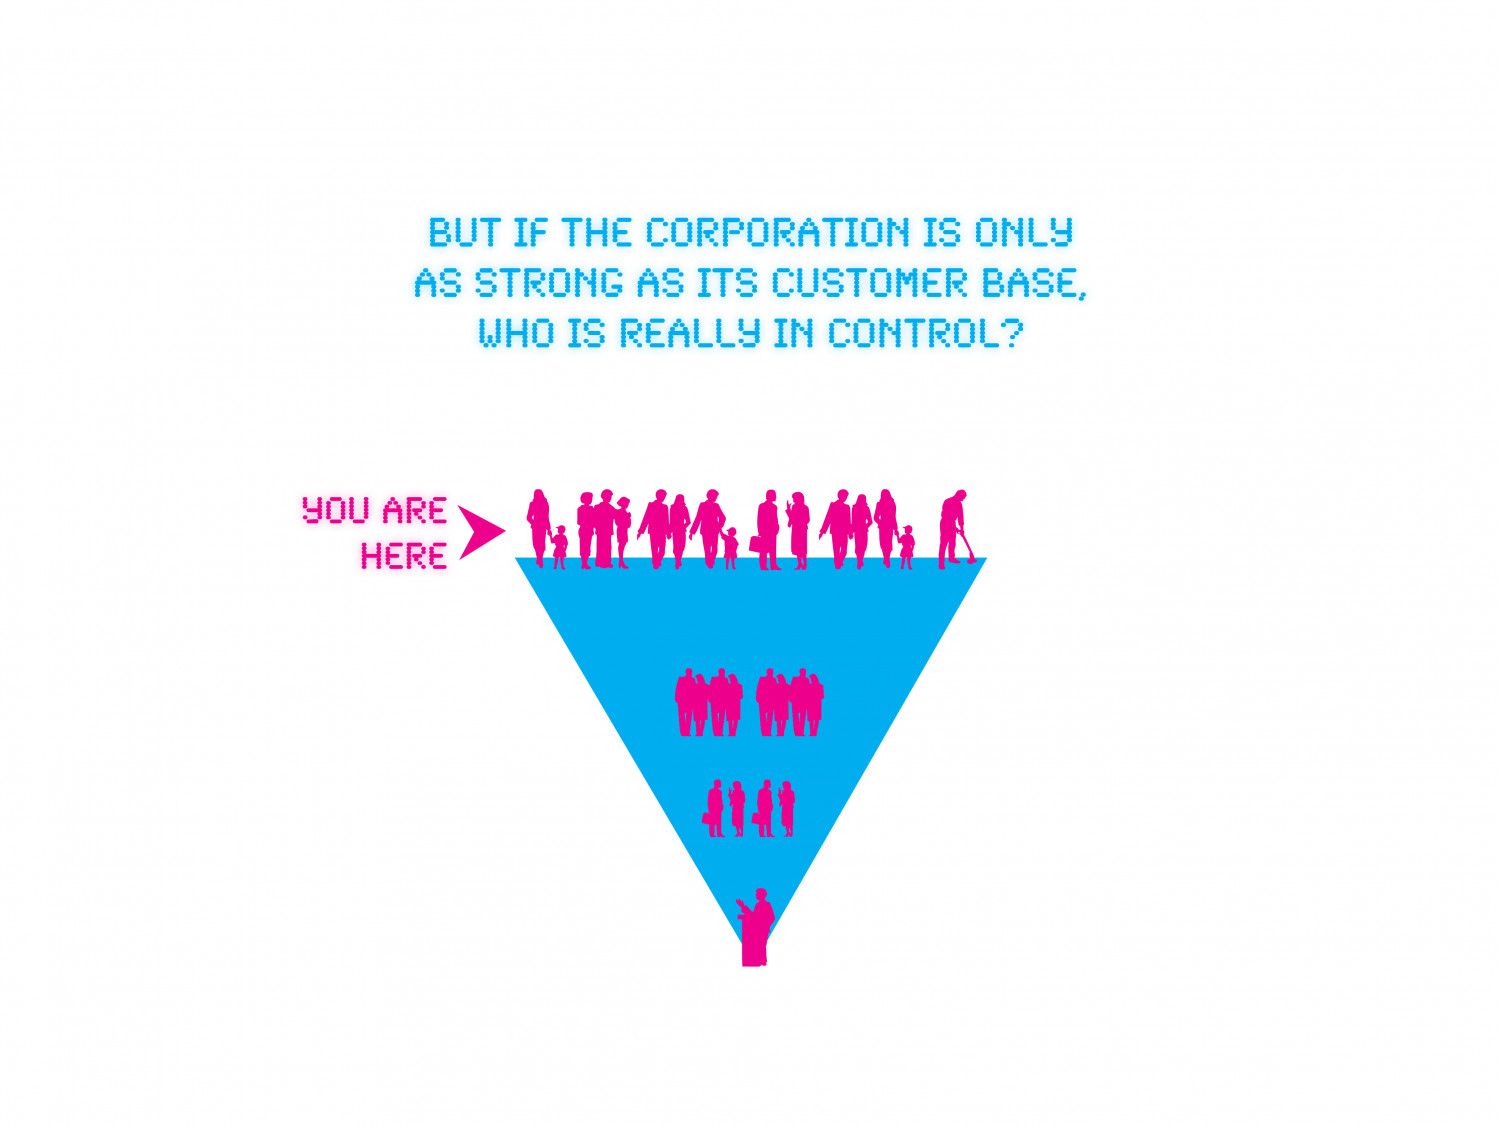 Isn't it the consumer (not the corporation) who is 'really' in control? Infographic